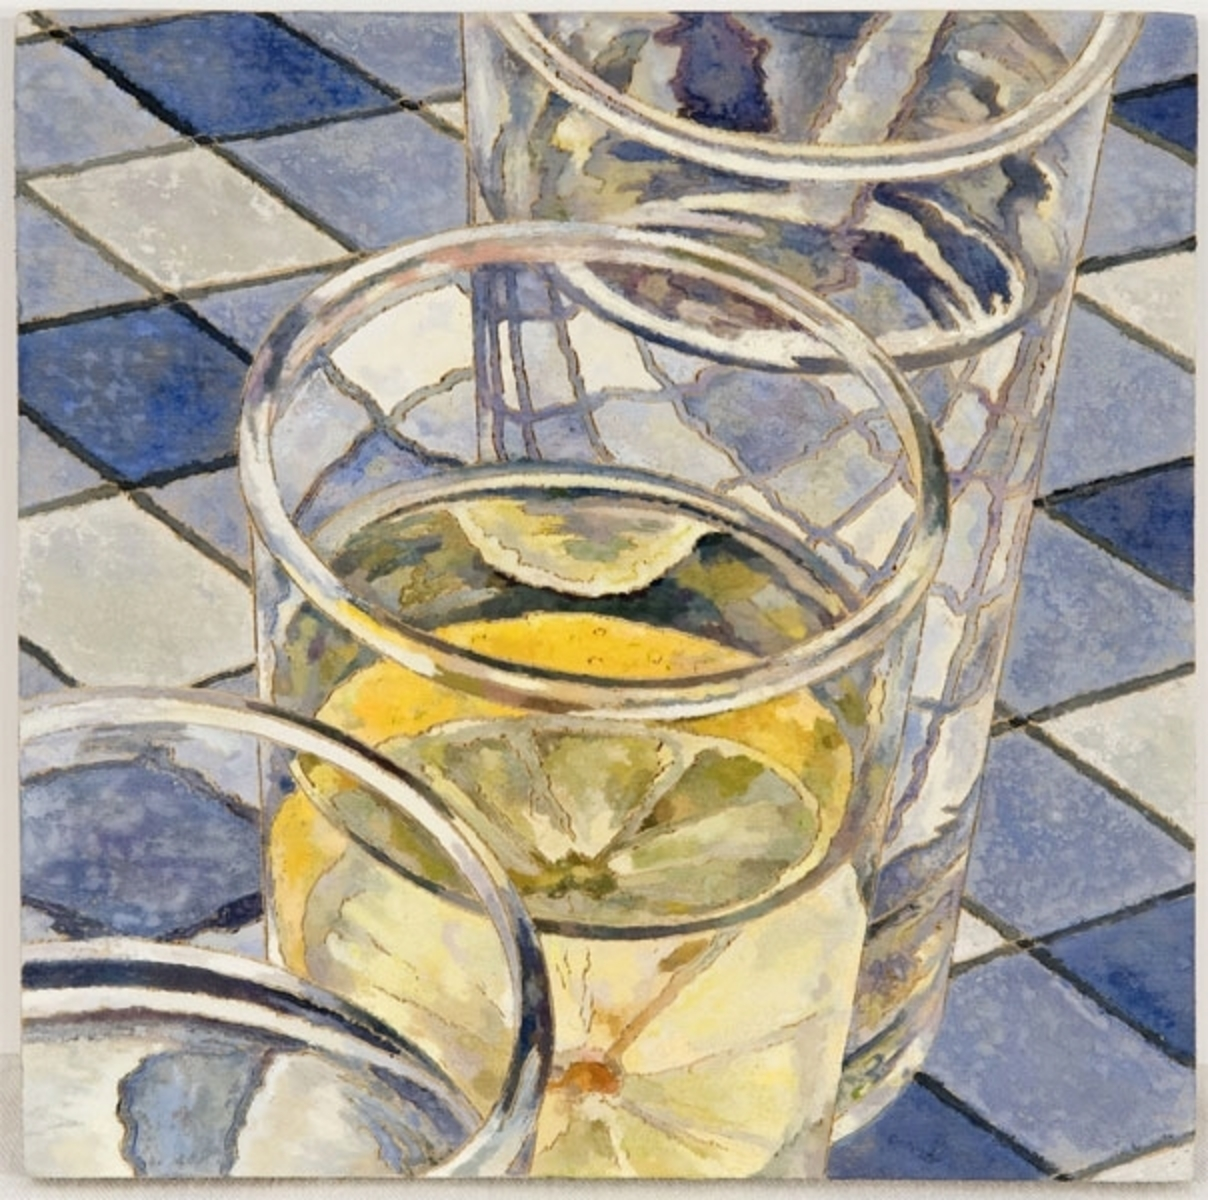 Glasses of water with lemon